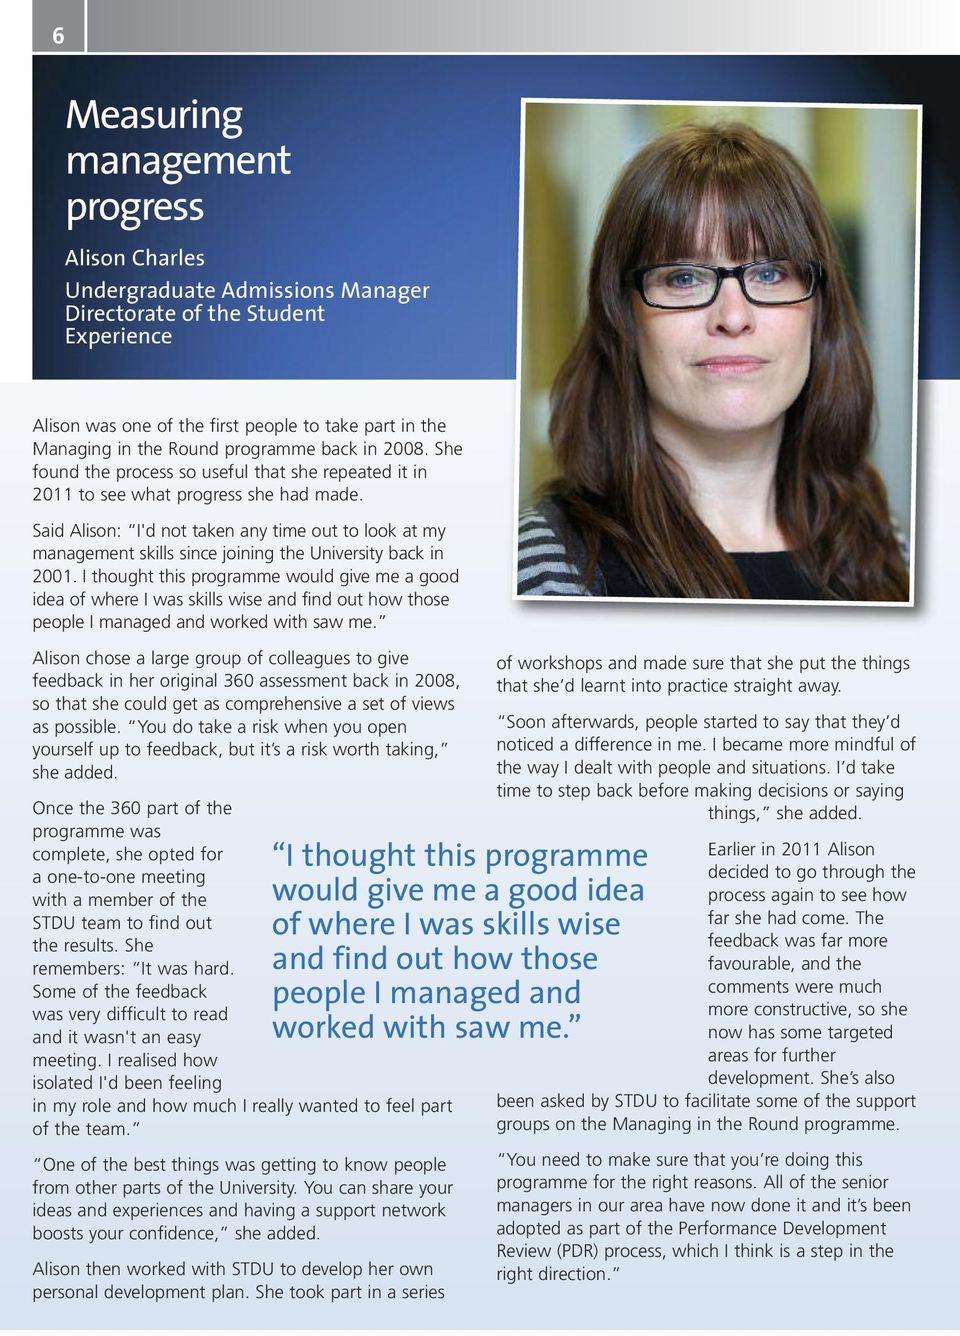 Said Alison: I'd not taken any time out to look at my management skills since joining the University back in 2001.